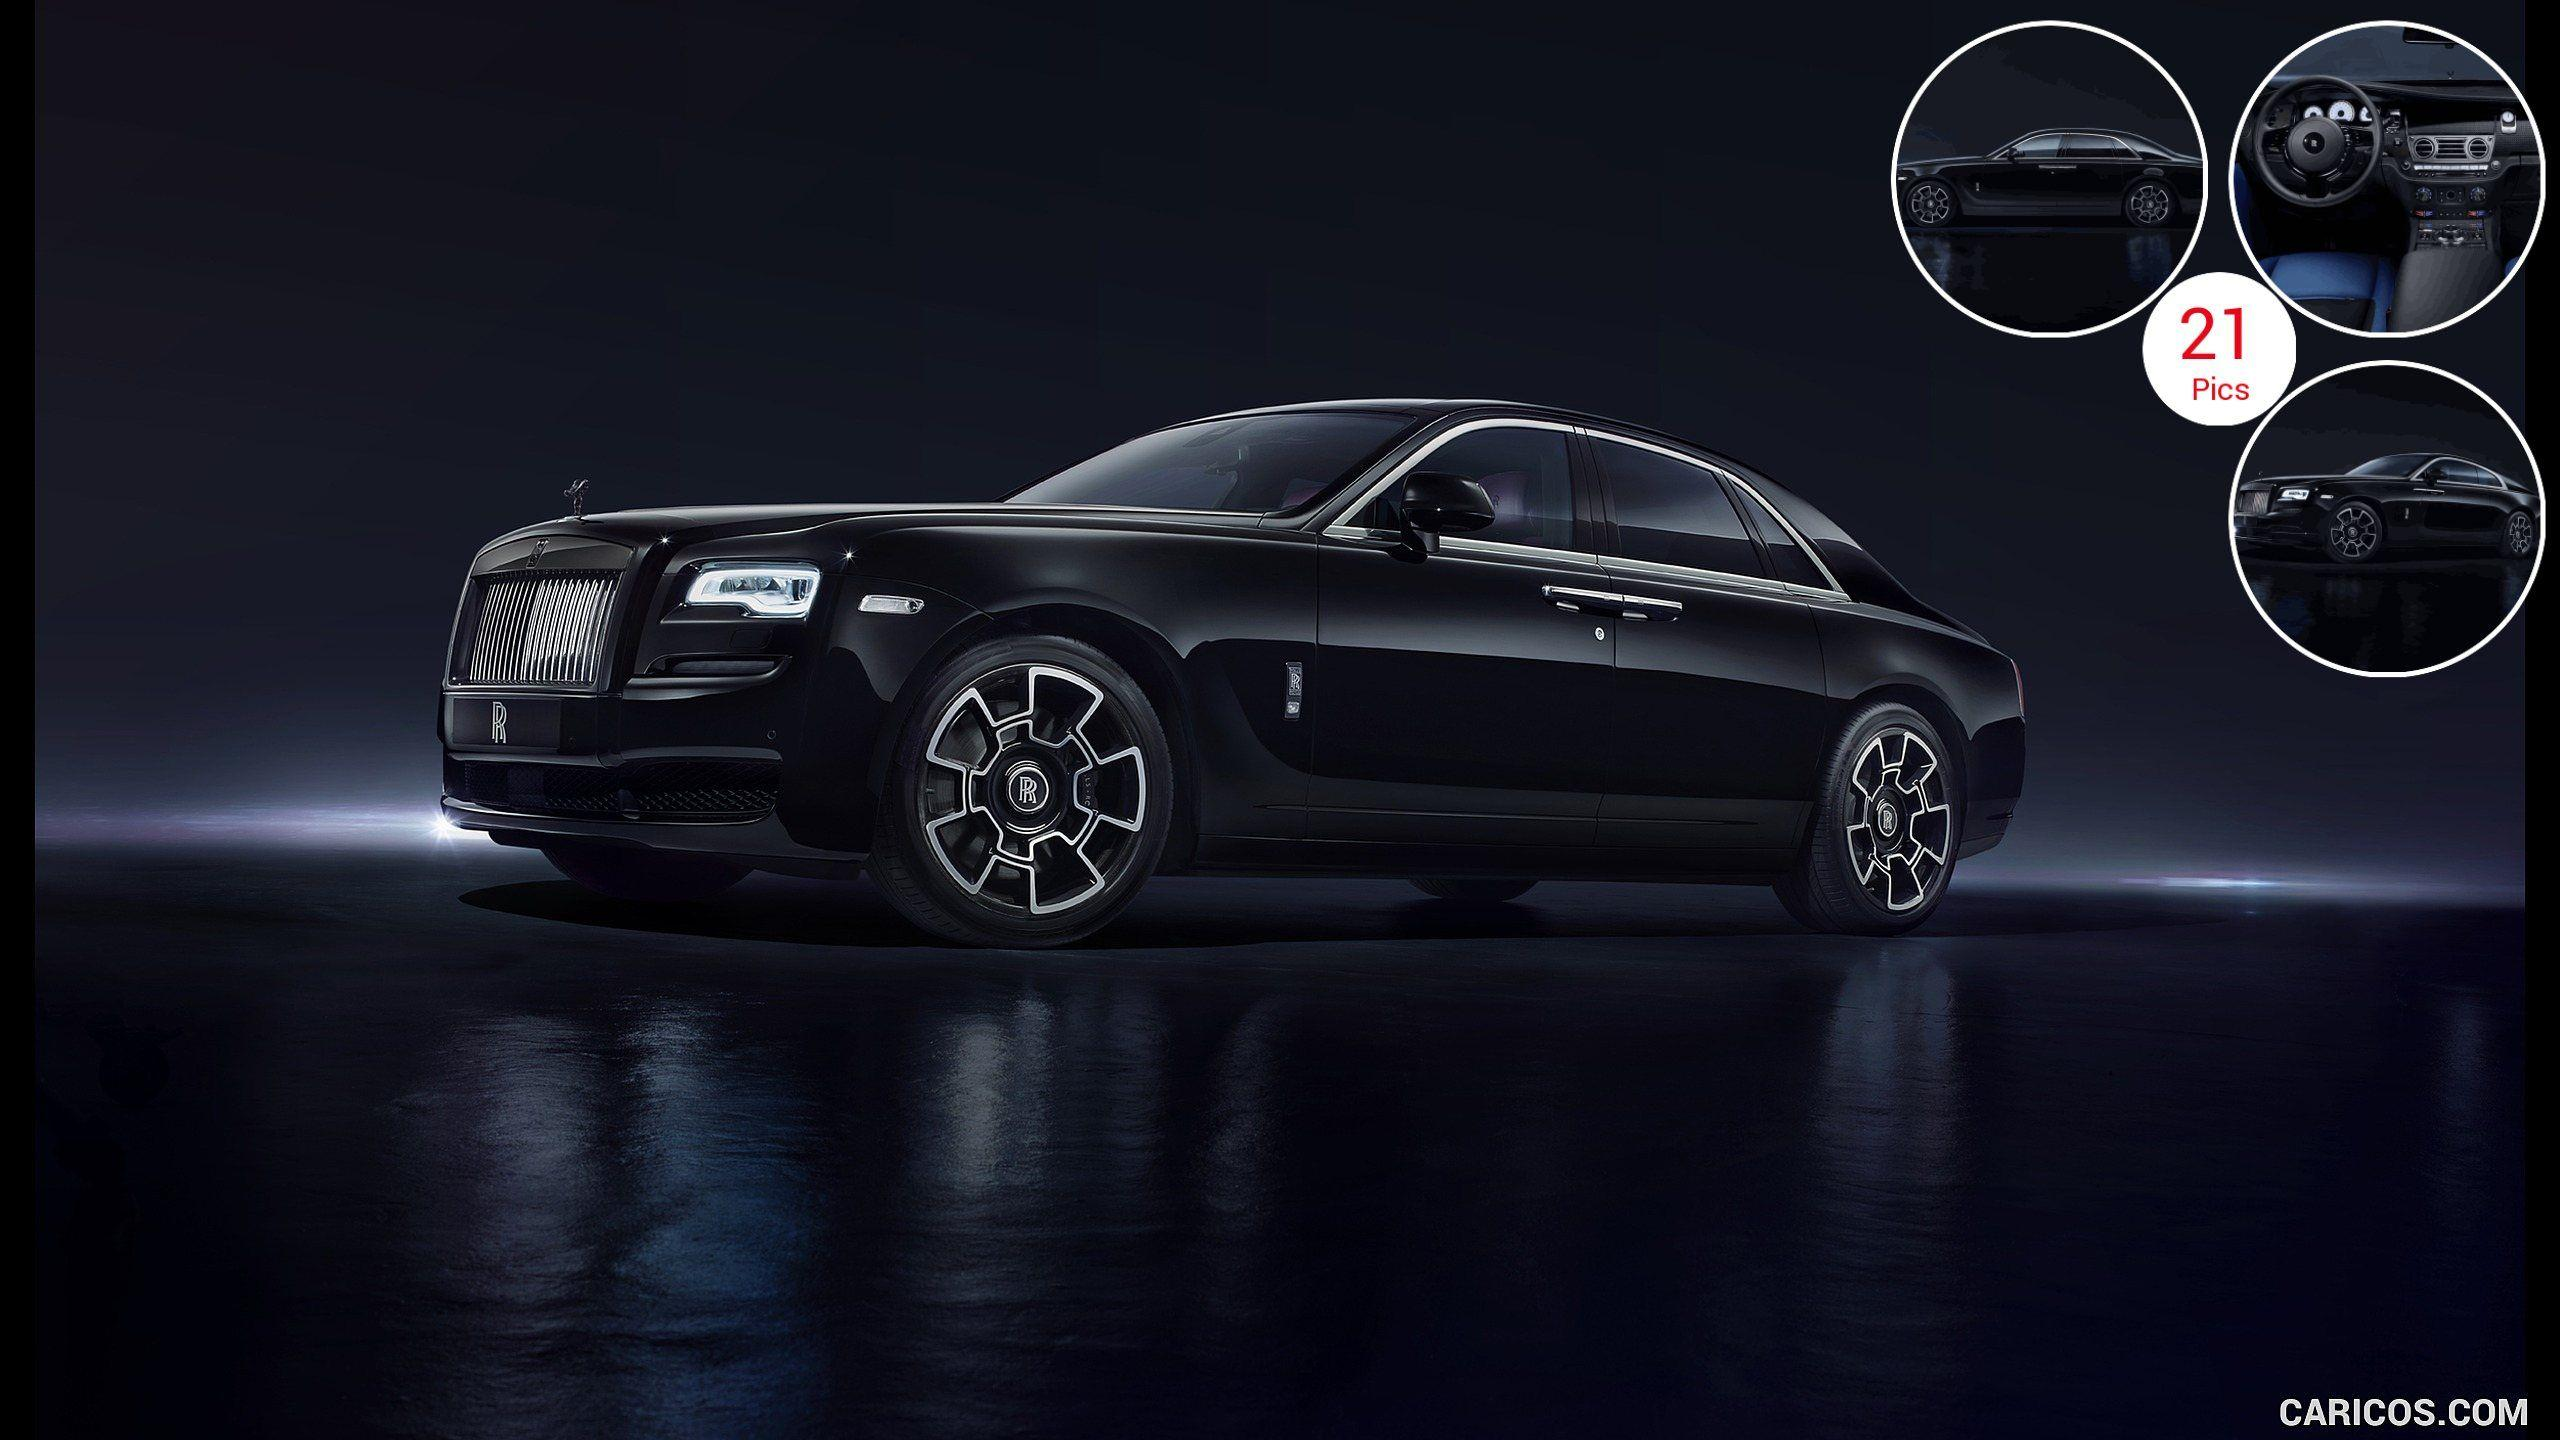 2016 Rolls-Royce Ghost Black Badge - Front | HD Wallpaper #12